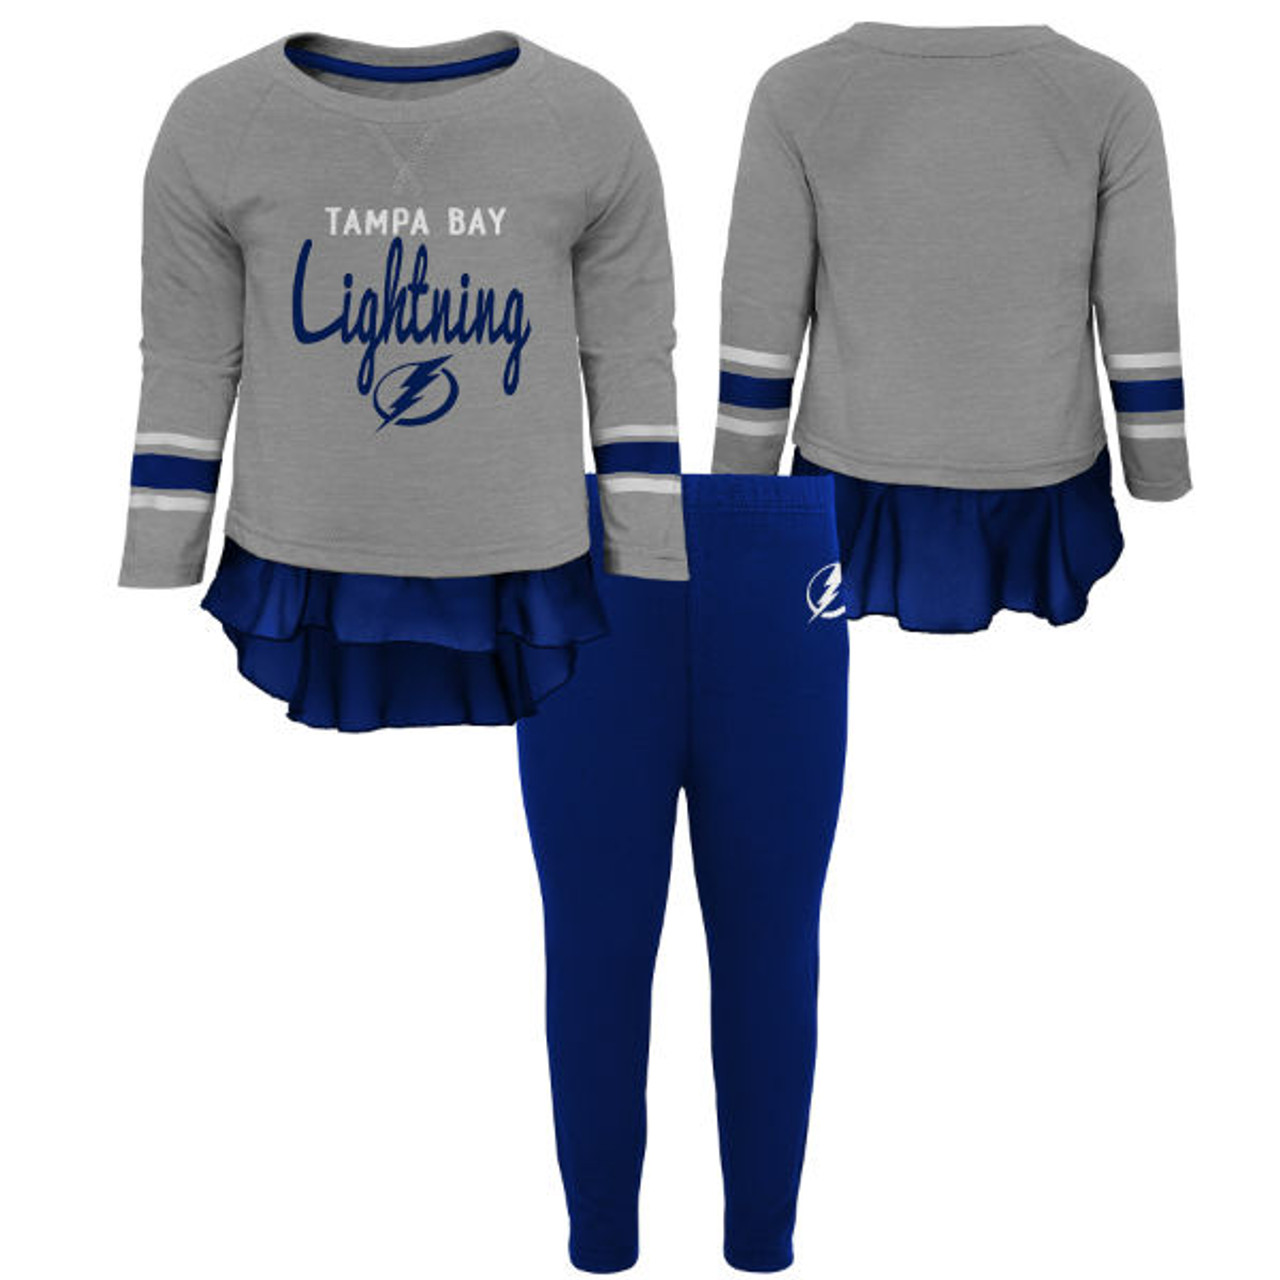 bc11337a00 Child's (4-6X) Tampa Bay Lightning Showoff Legging Set - Tampa Bay Sports